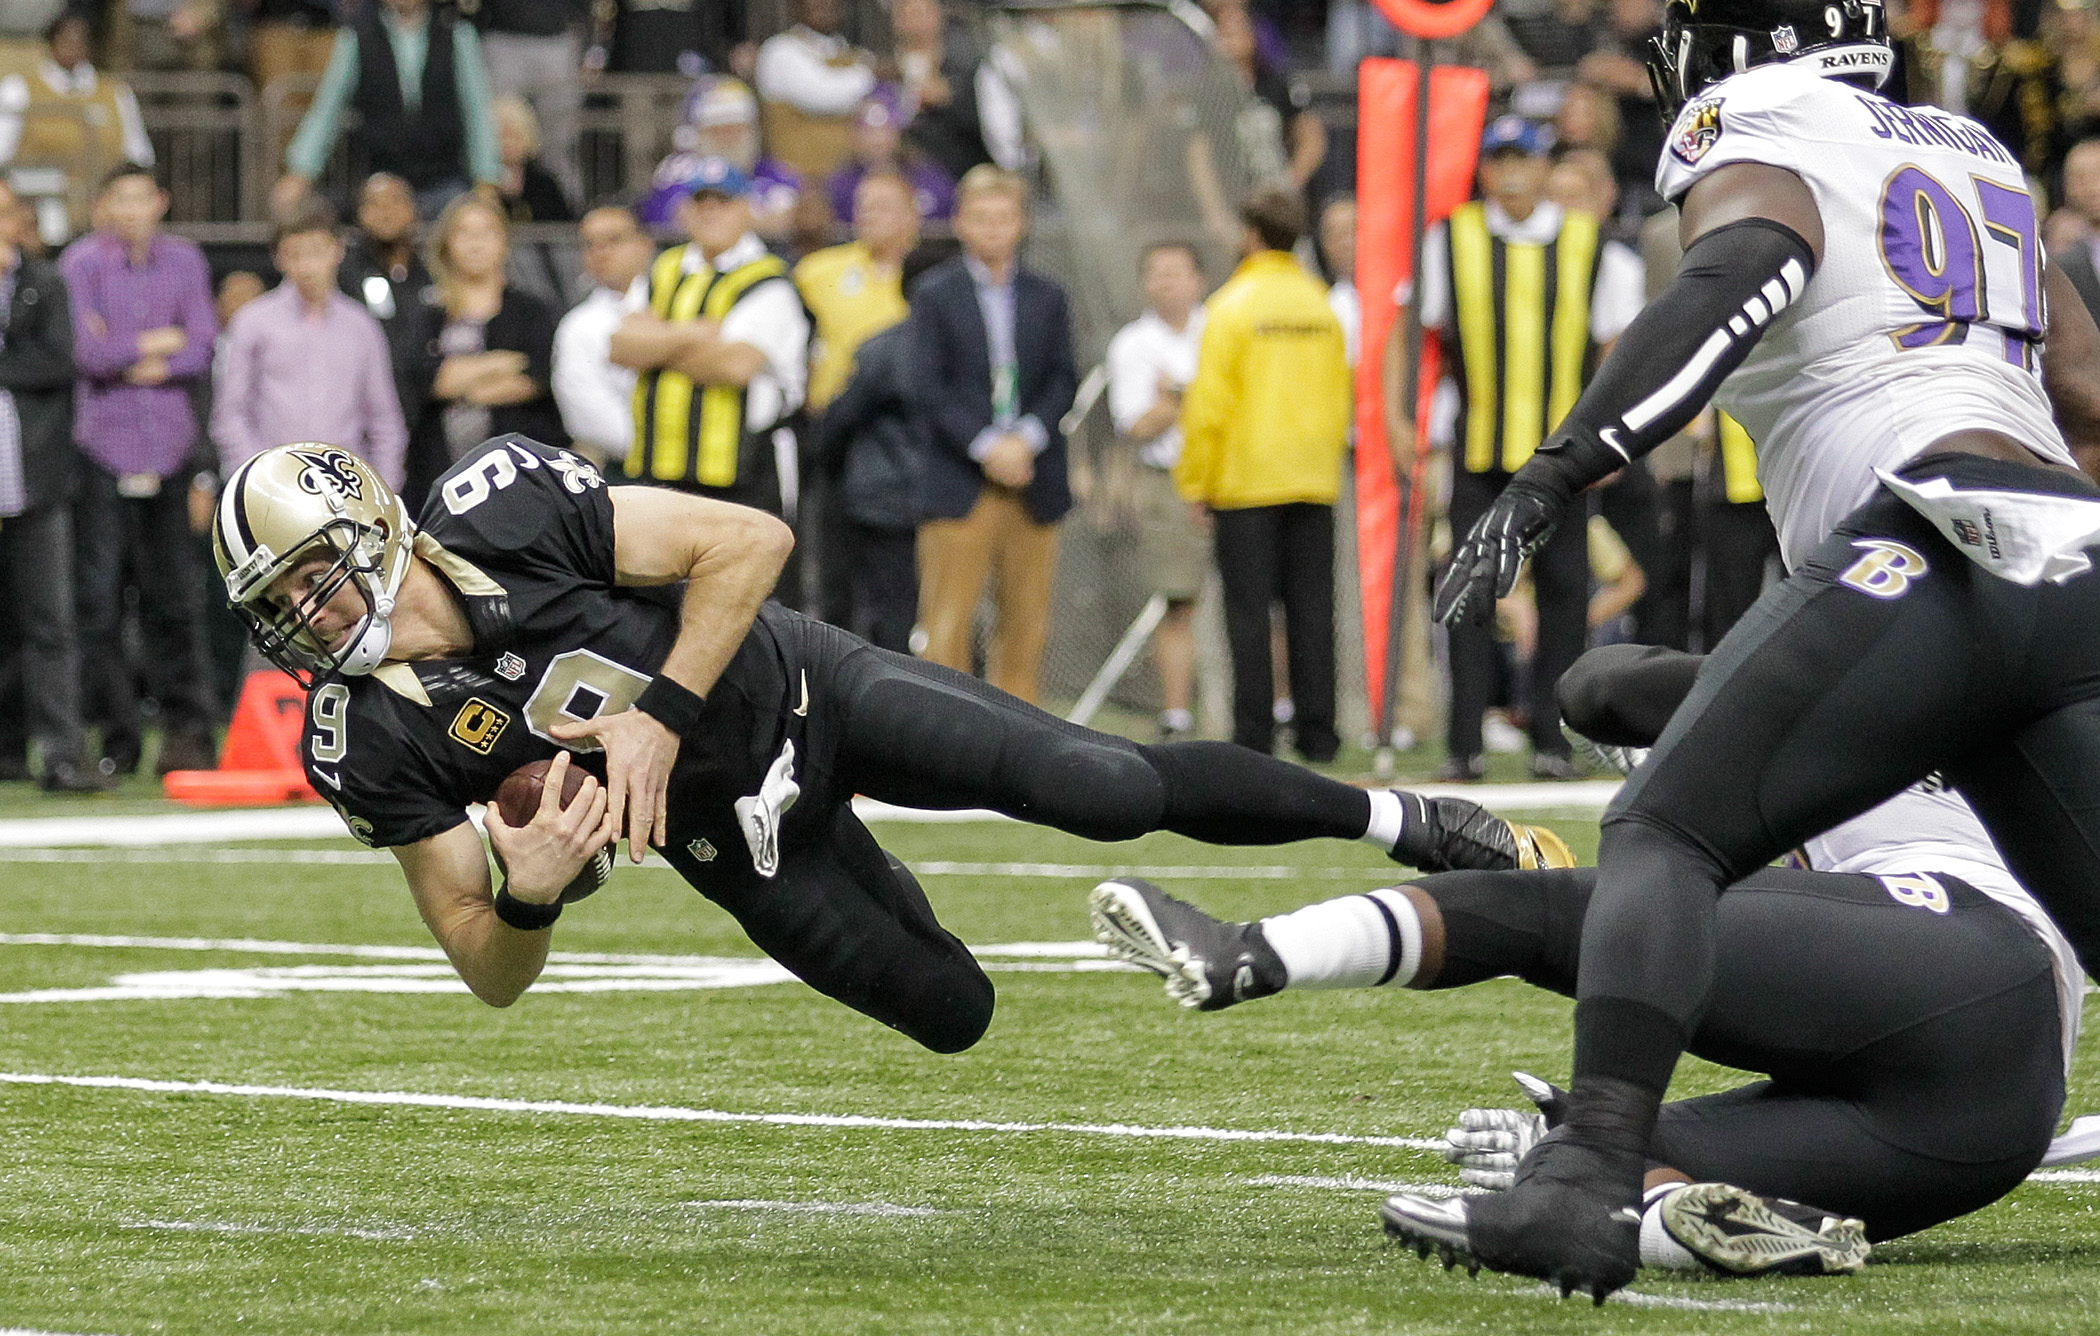 New Orleans Saints quarterback Drew Brees (9) scrambles towards the goal line but comes up short and the Saints come away with no points during the game at the Mercedes-Benz Superdome in New Orleans, Monday, November 24, 2014. (Photo by David Grunfeld, NOLA.com | The Times-Picayune)